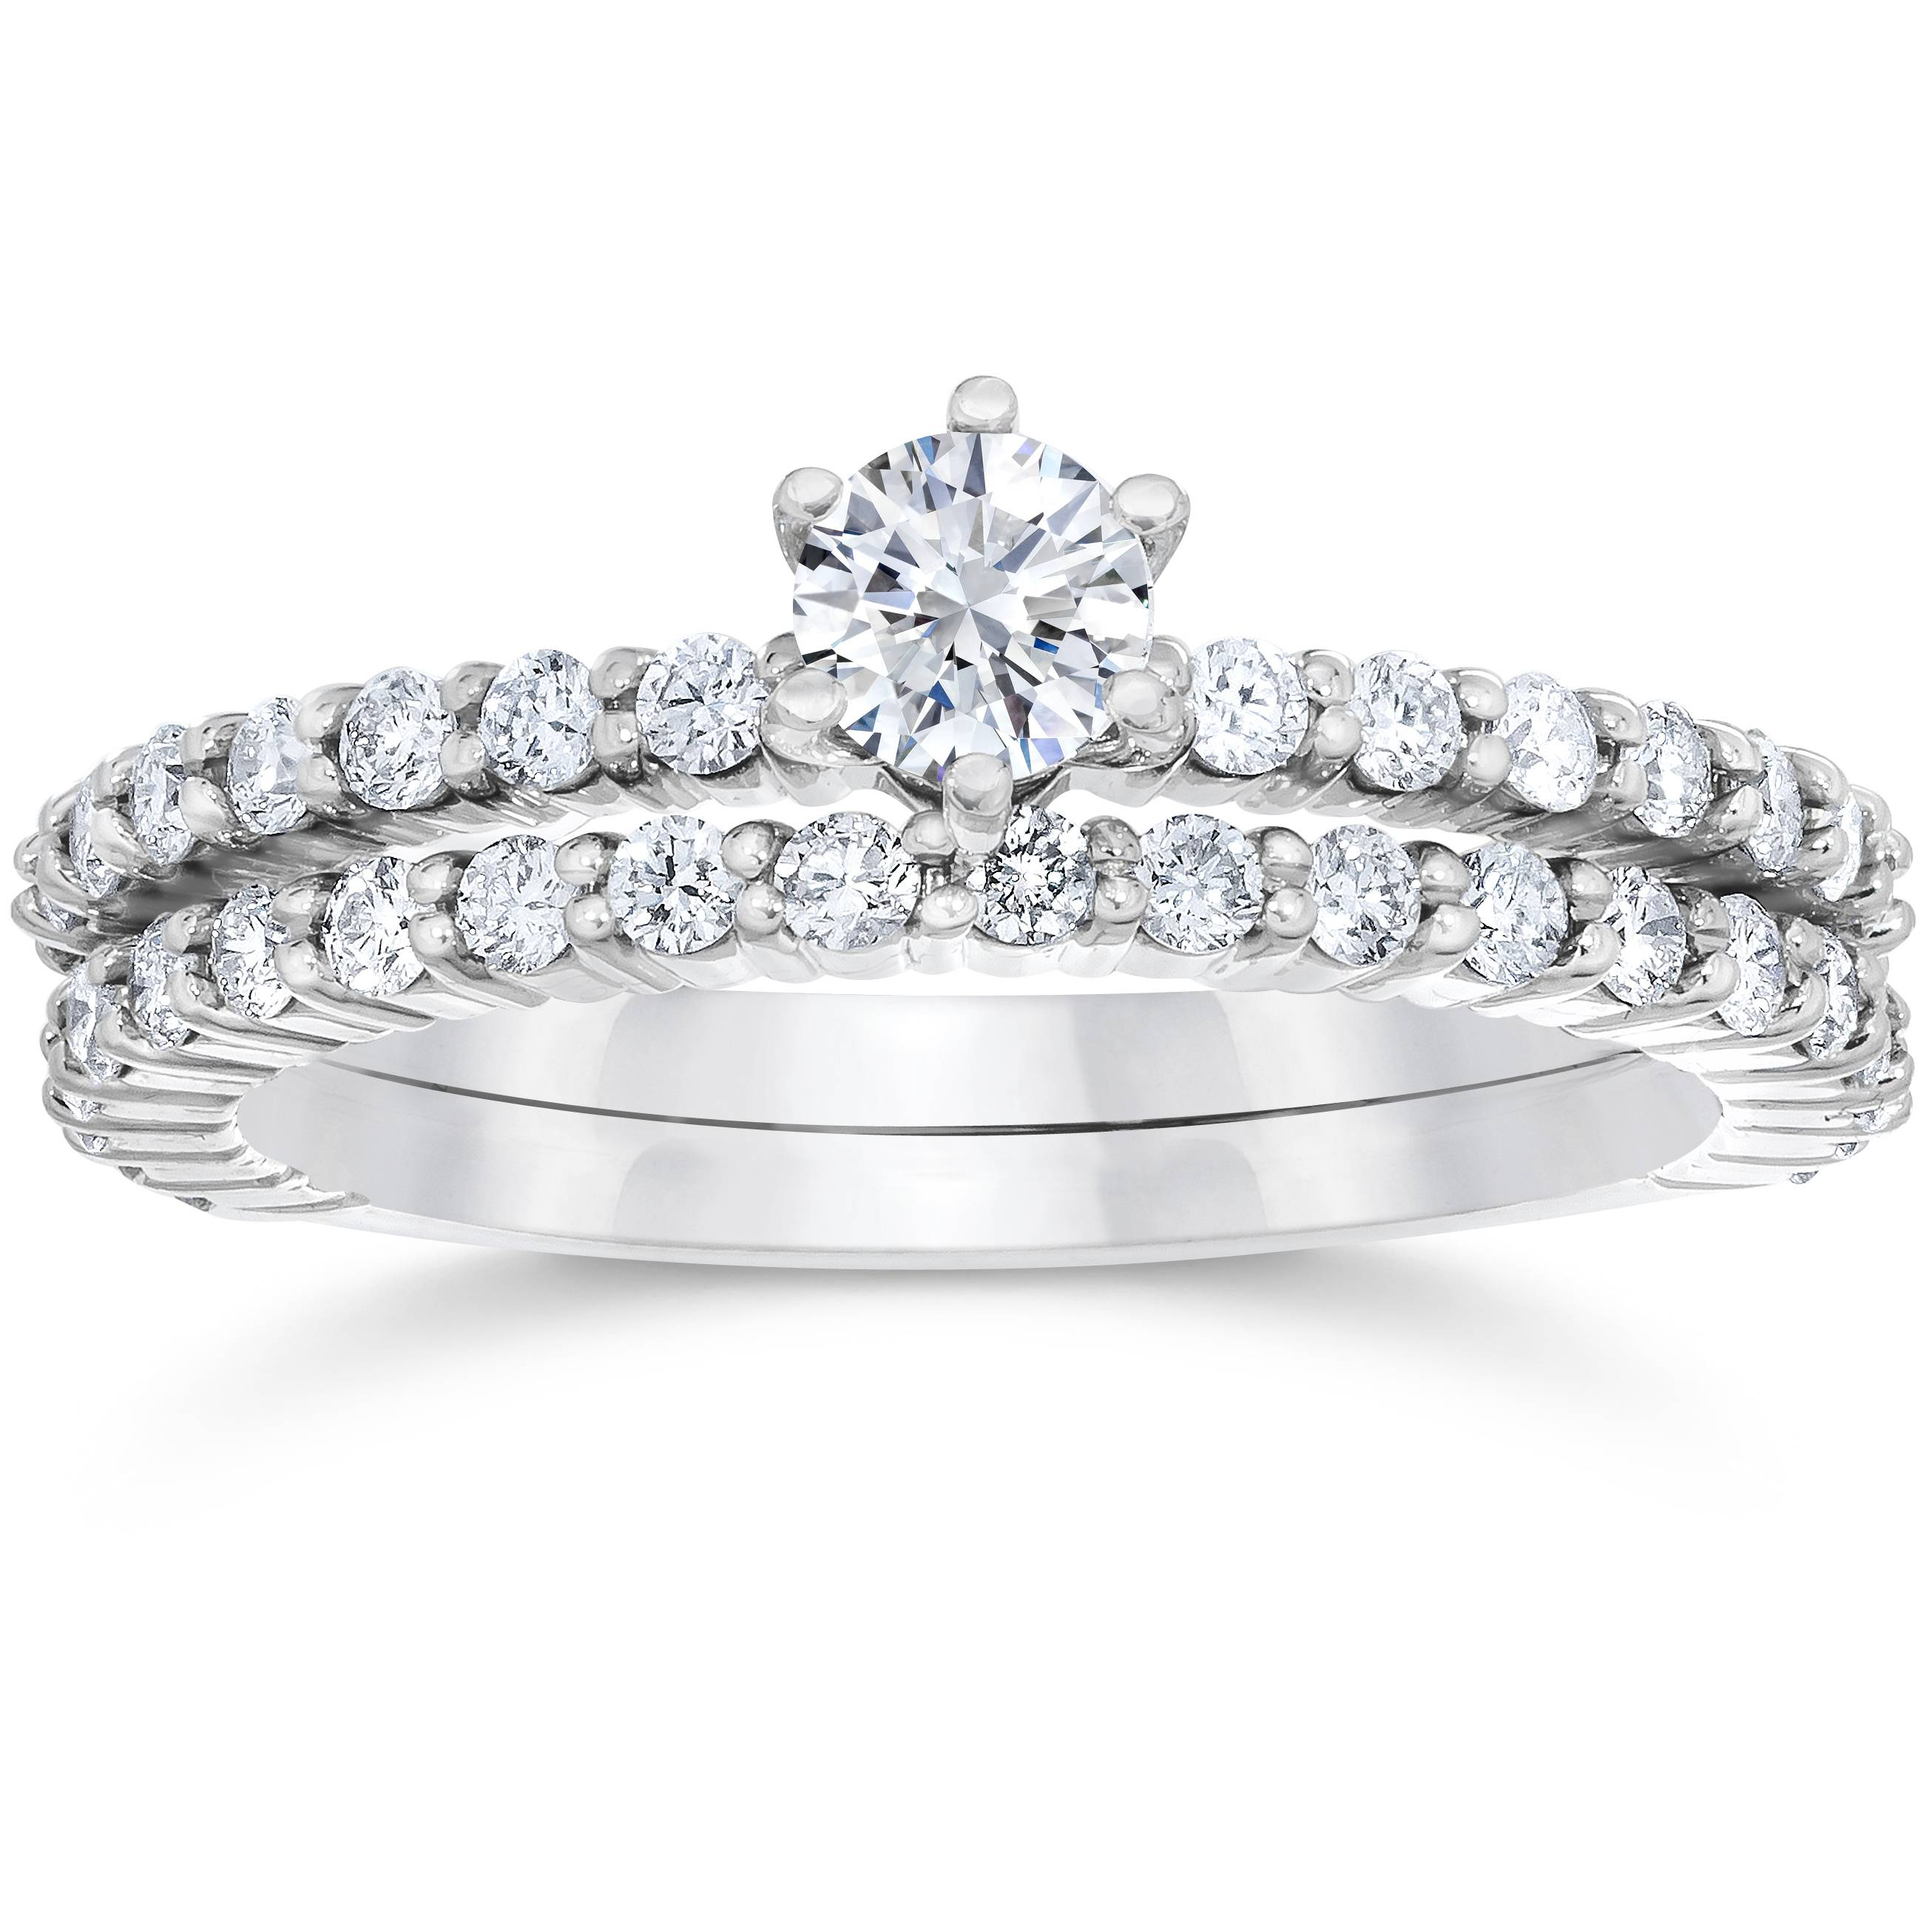 1 ct engagement matching wedding ring set white